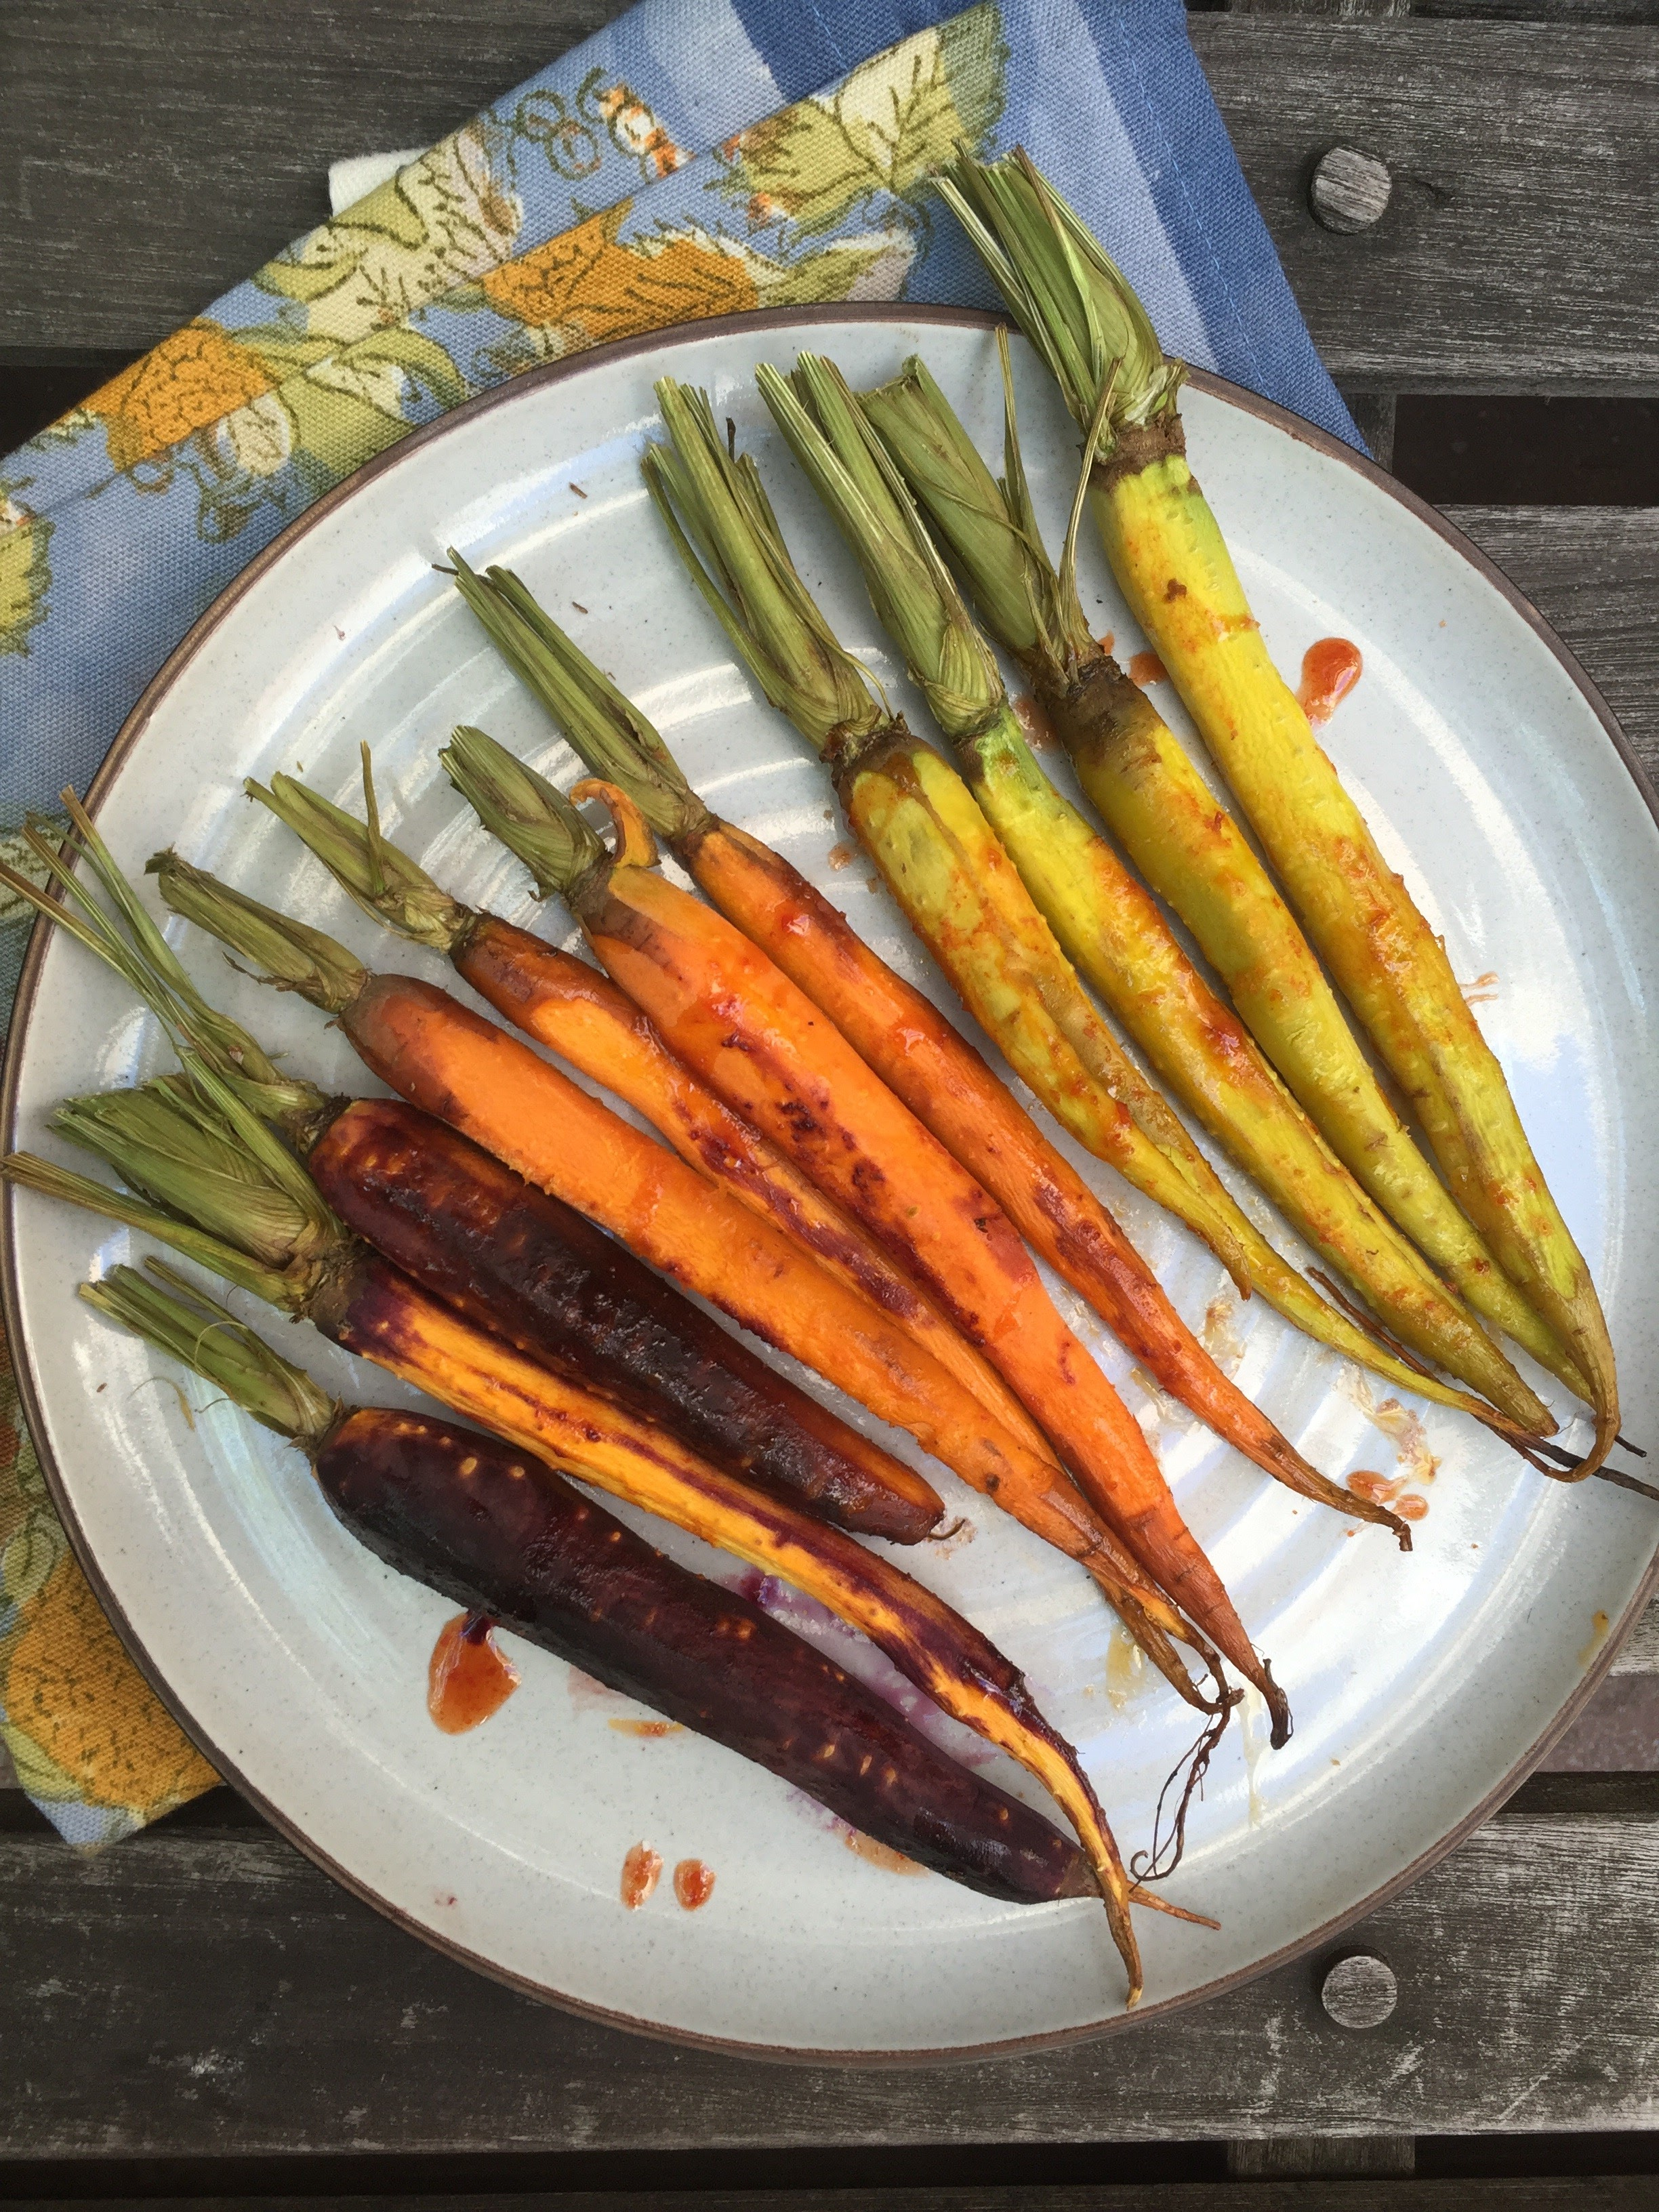 Also great as a snack alone or with some hummus and don't forget a delicious glass of carrot juice is packed with the 6 carrots you need in a week! -